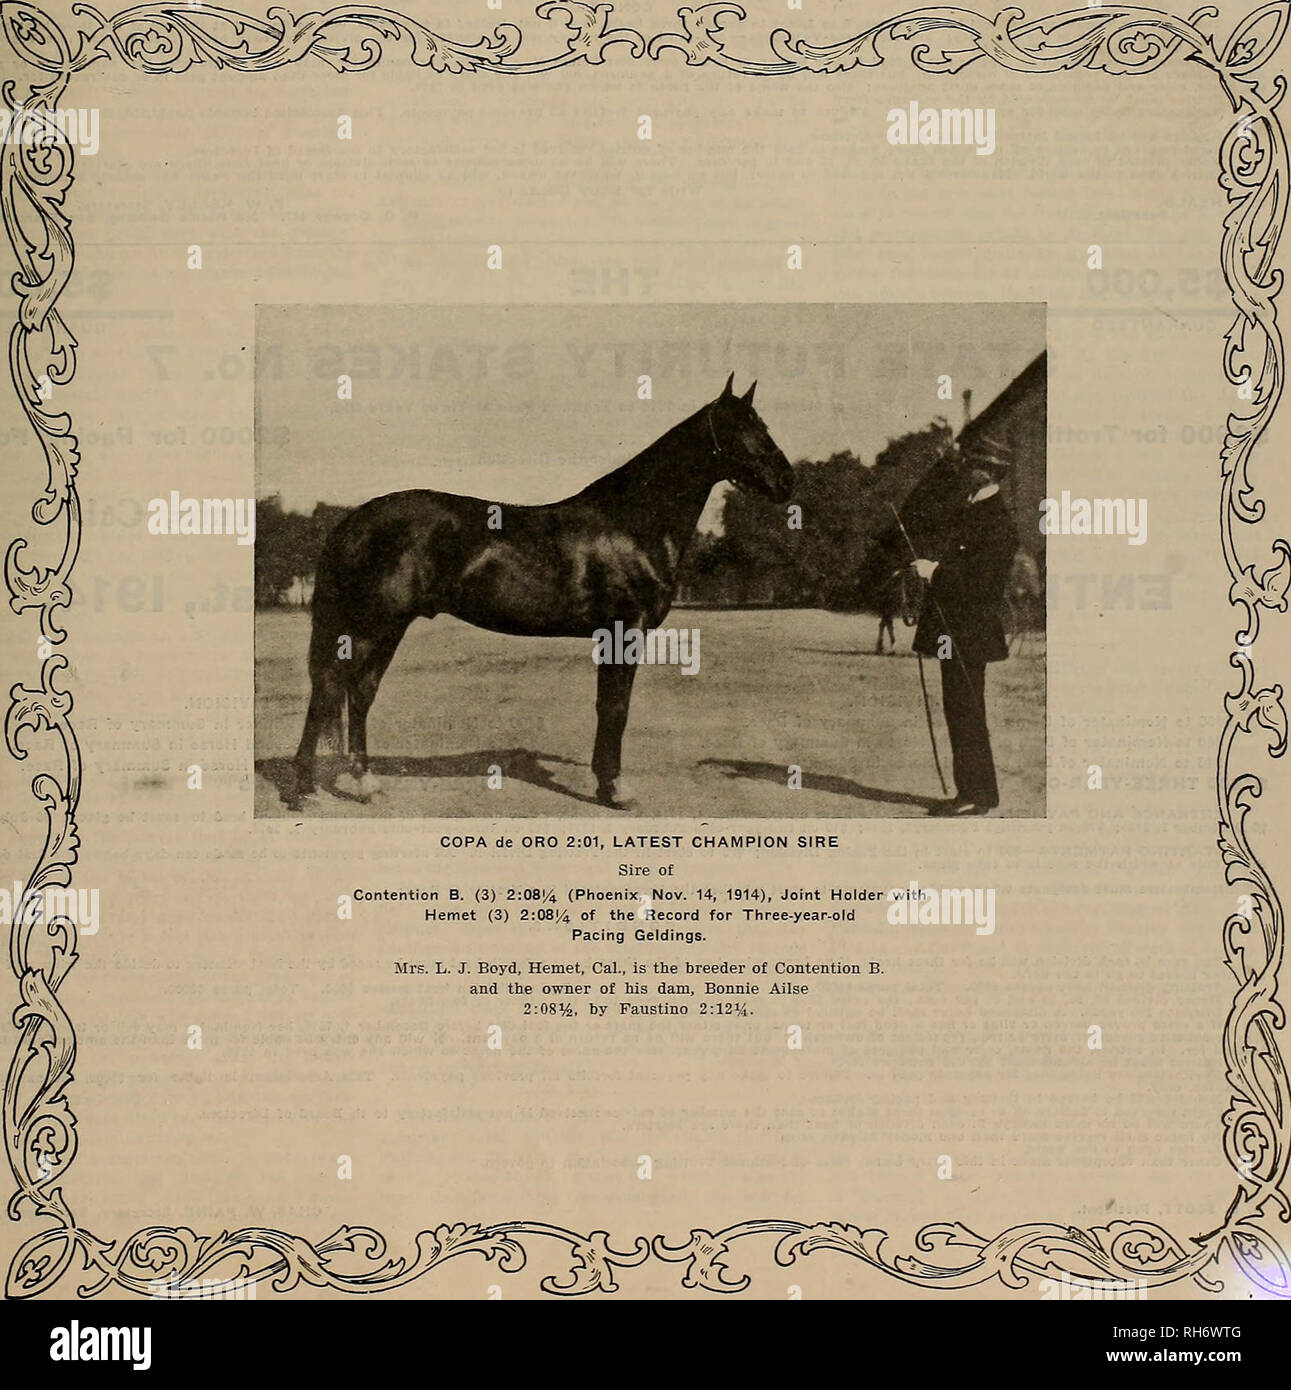 . Breeder and sportsman. Horses. VOLUME LXV. No. 21. SAN FRANCISCO, SATURDAY, NOVEMBER 21, 1914. Subscription—$3.00 Per T««r. COPA de ORO 2:01, LATEST CHAMPION SIRE Sire of Contention B. (3) 2:08^i (Phoenix, Nov. 14, 1914), Joint Holder with Hemet (3) 2:08[4 of the Record for Three-year-old Pacing Geldings. Mrs. L. J. Boyd, Hemet, Cal., is the breeder of Contention B. and the owner of his dam, Bonnie Ailse 2:08%, by Faustino 2:12%.. Please note that these images are extracted from scanned page images that may have been digitally enhanced for readability - coloration and appearance of these ill Stock Photo